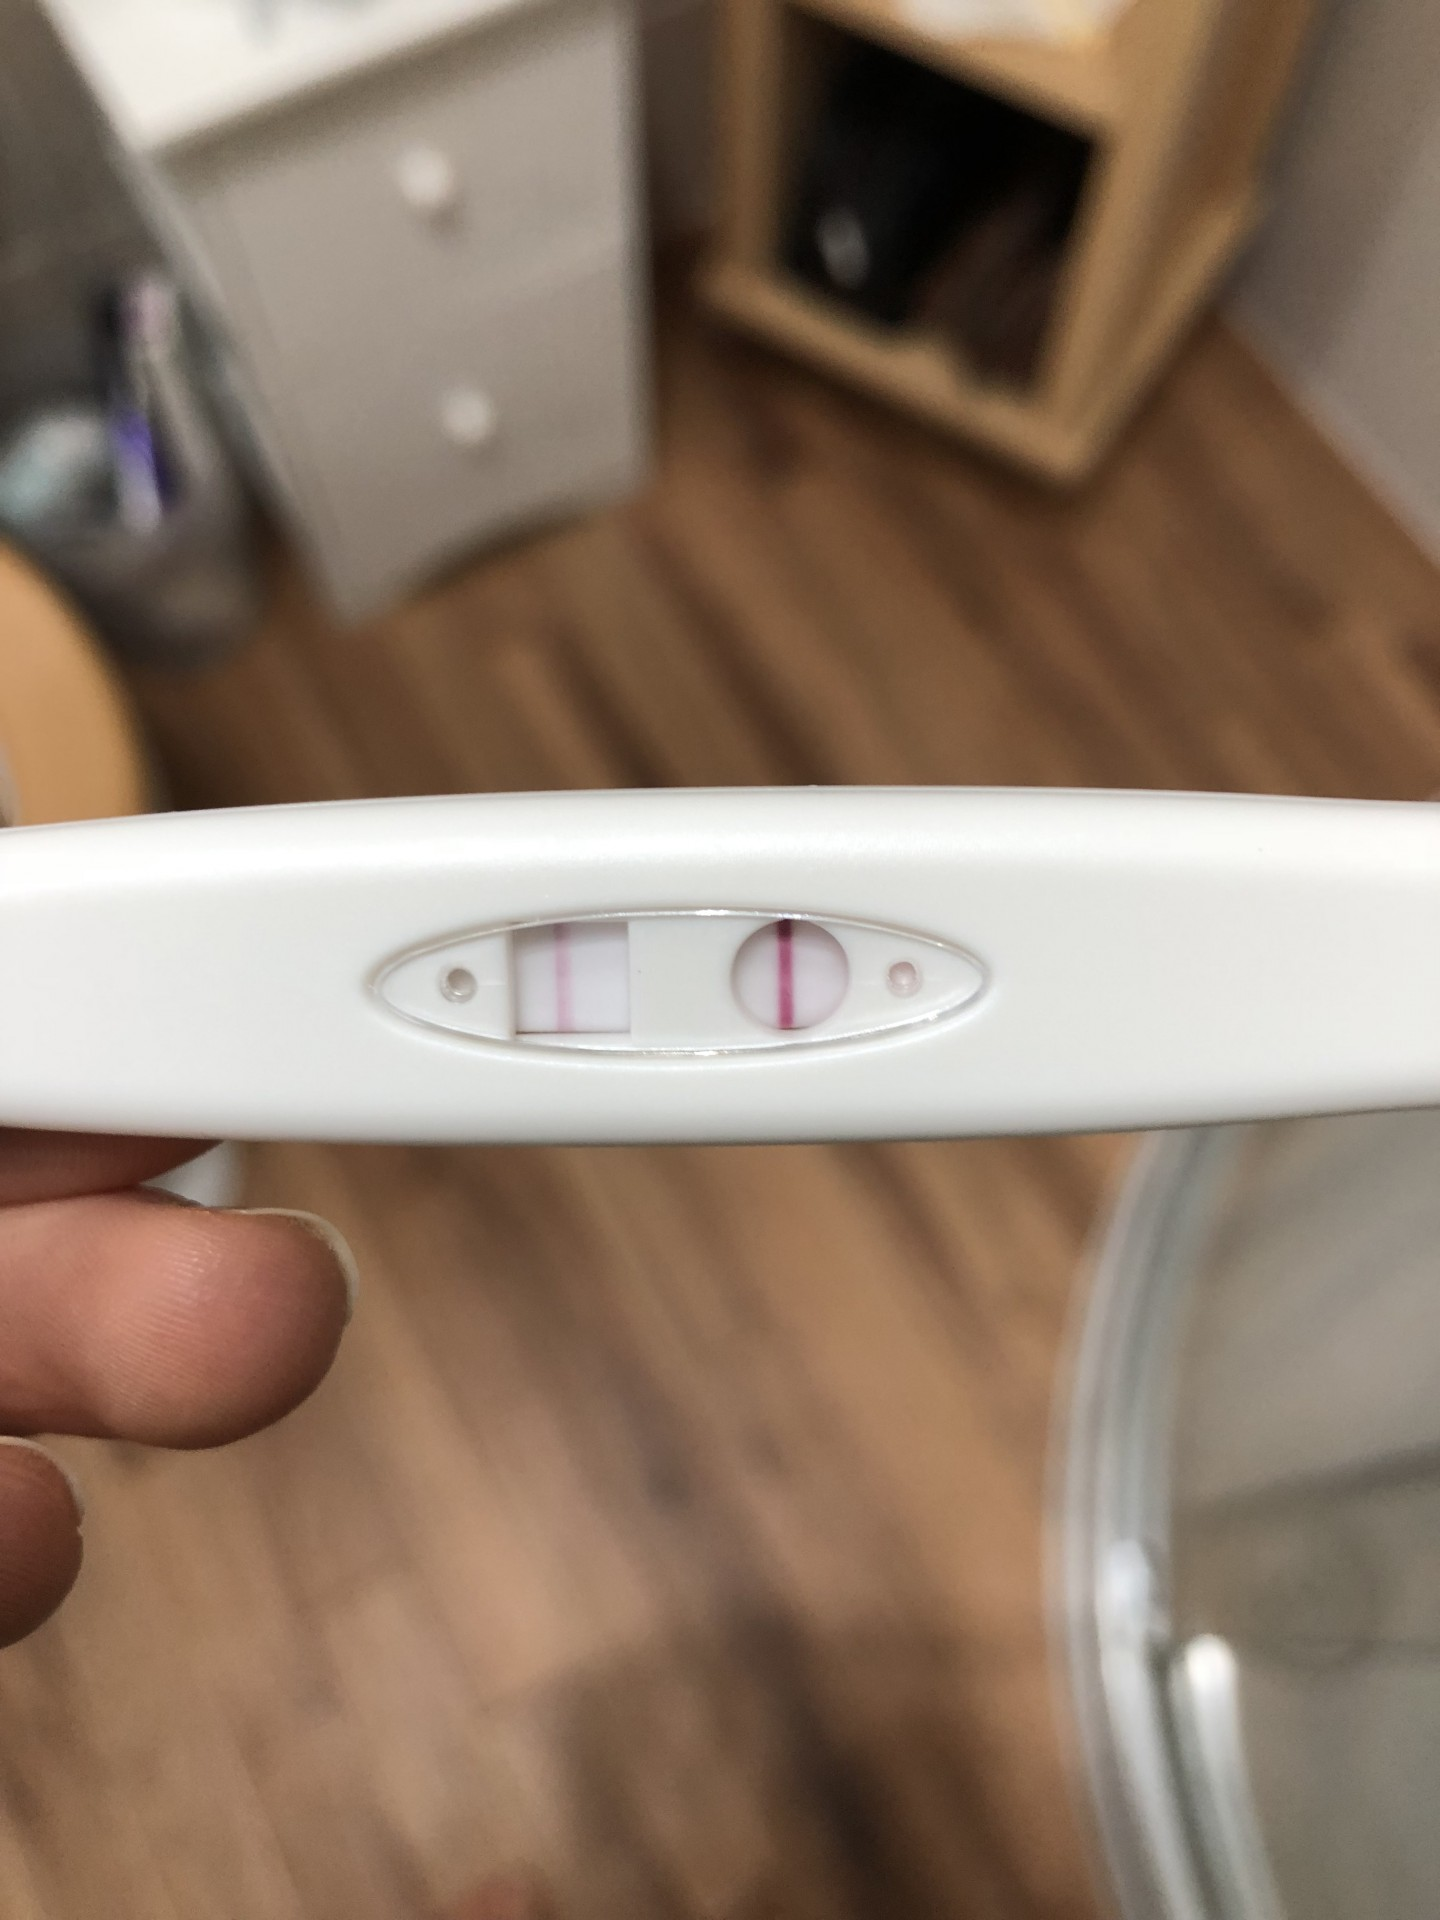 the brookfield lining raising the rings pregnancy test not sure if negative or positive how can I tell clear positive test